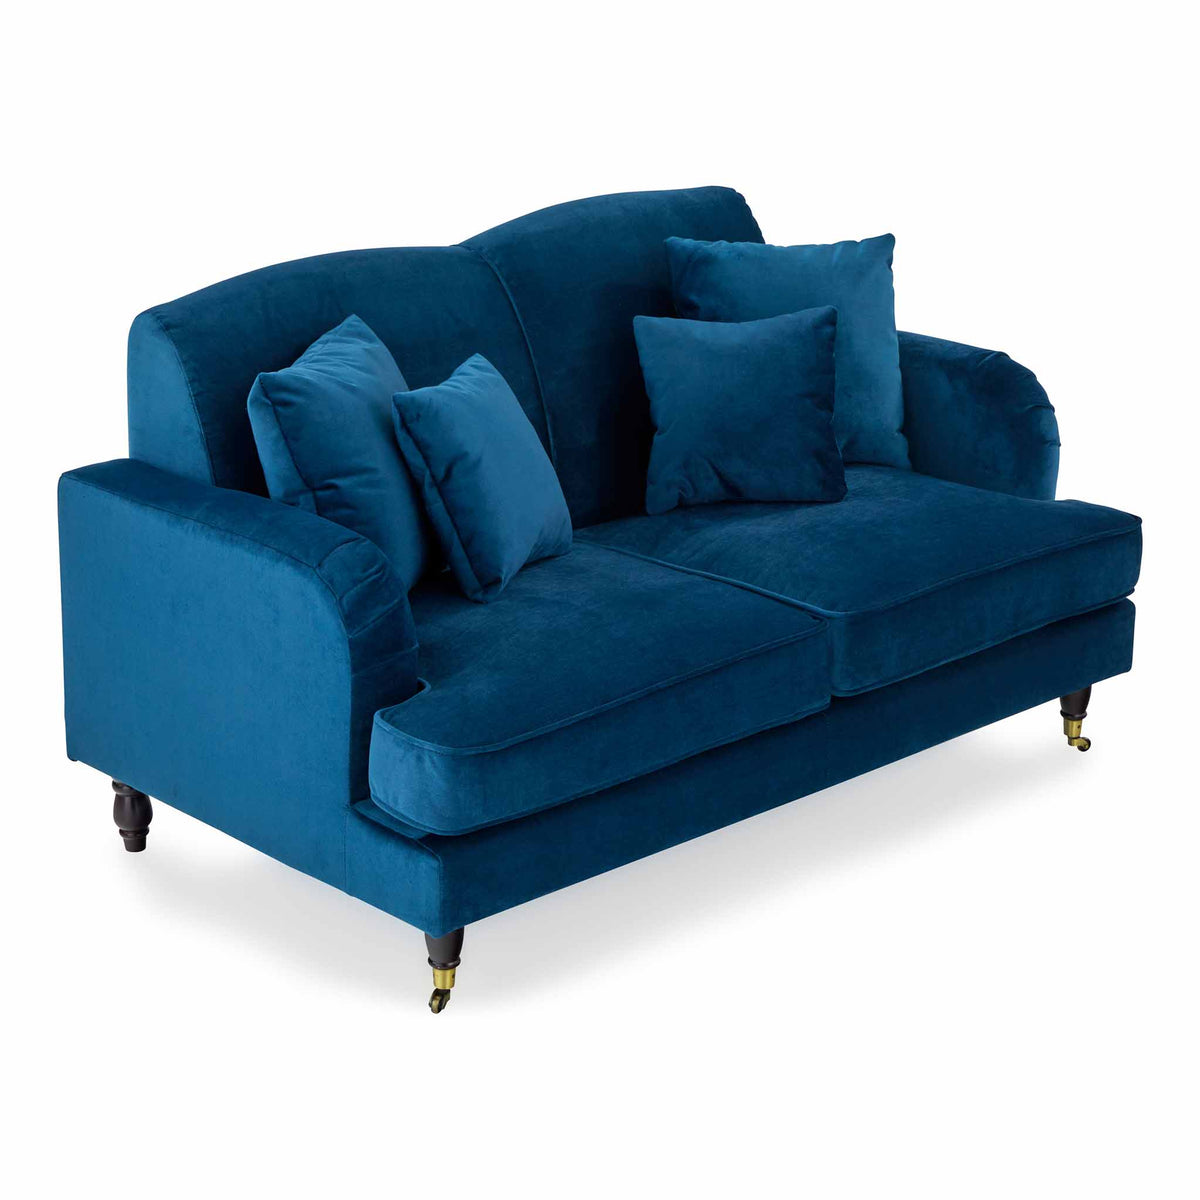 Piper Peacock 2 Seater Couch from Roseland Furniture